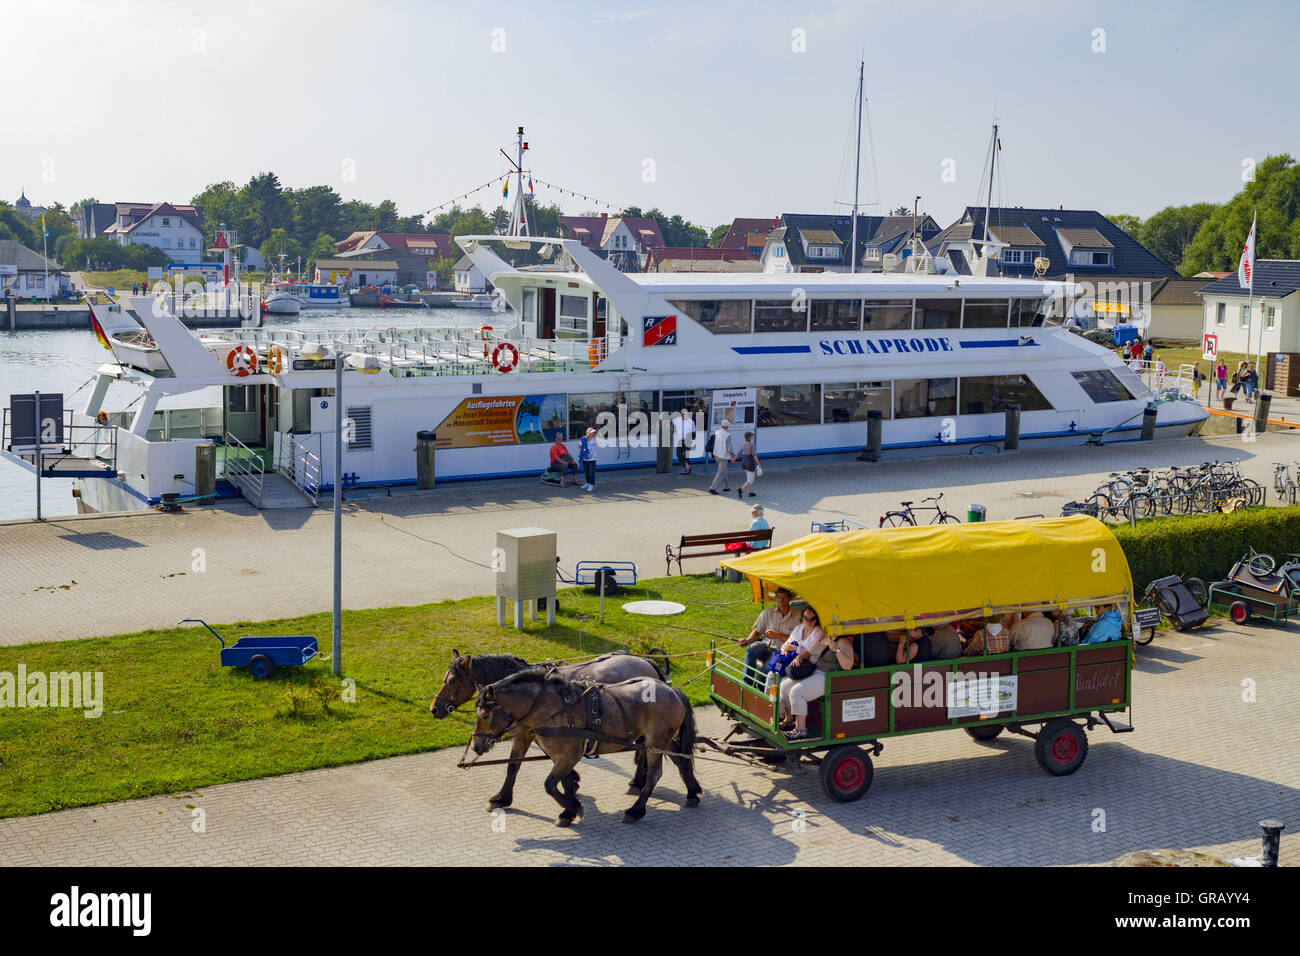 Harbor In Vitte With Ferry To Schaprode And Yellow Covered Horse-Drawn Caravan - Stock Image